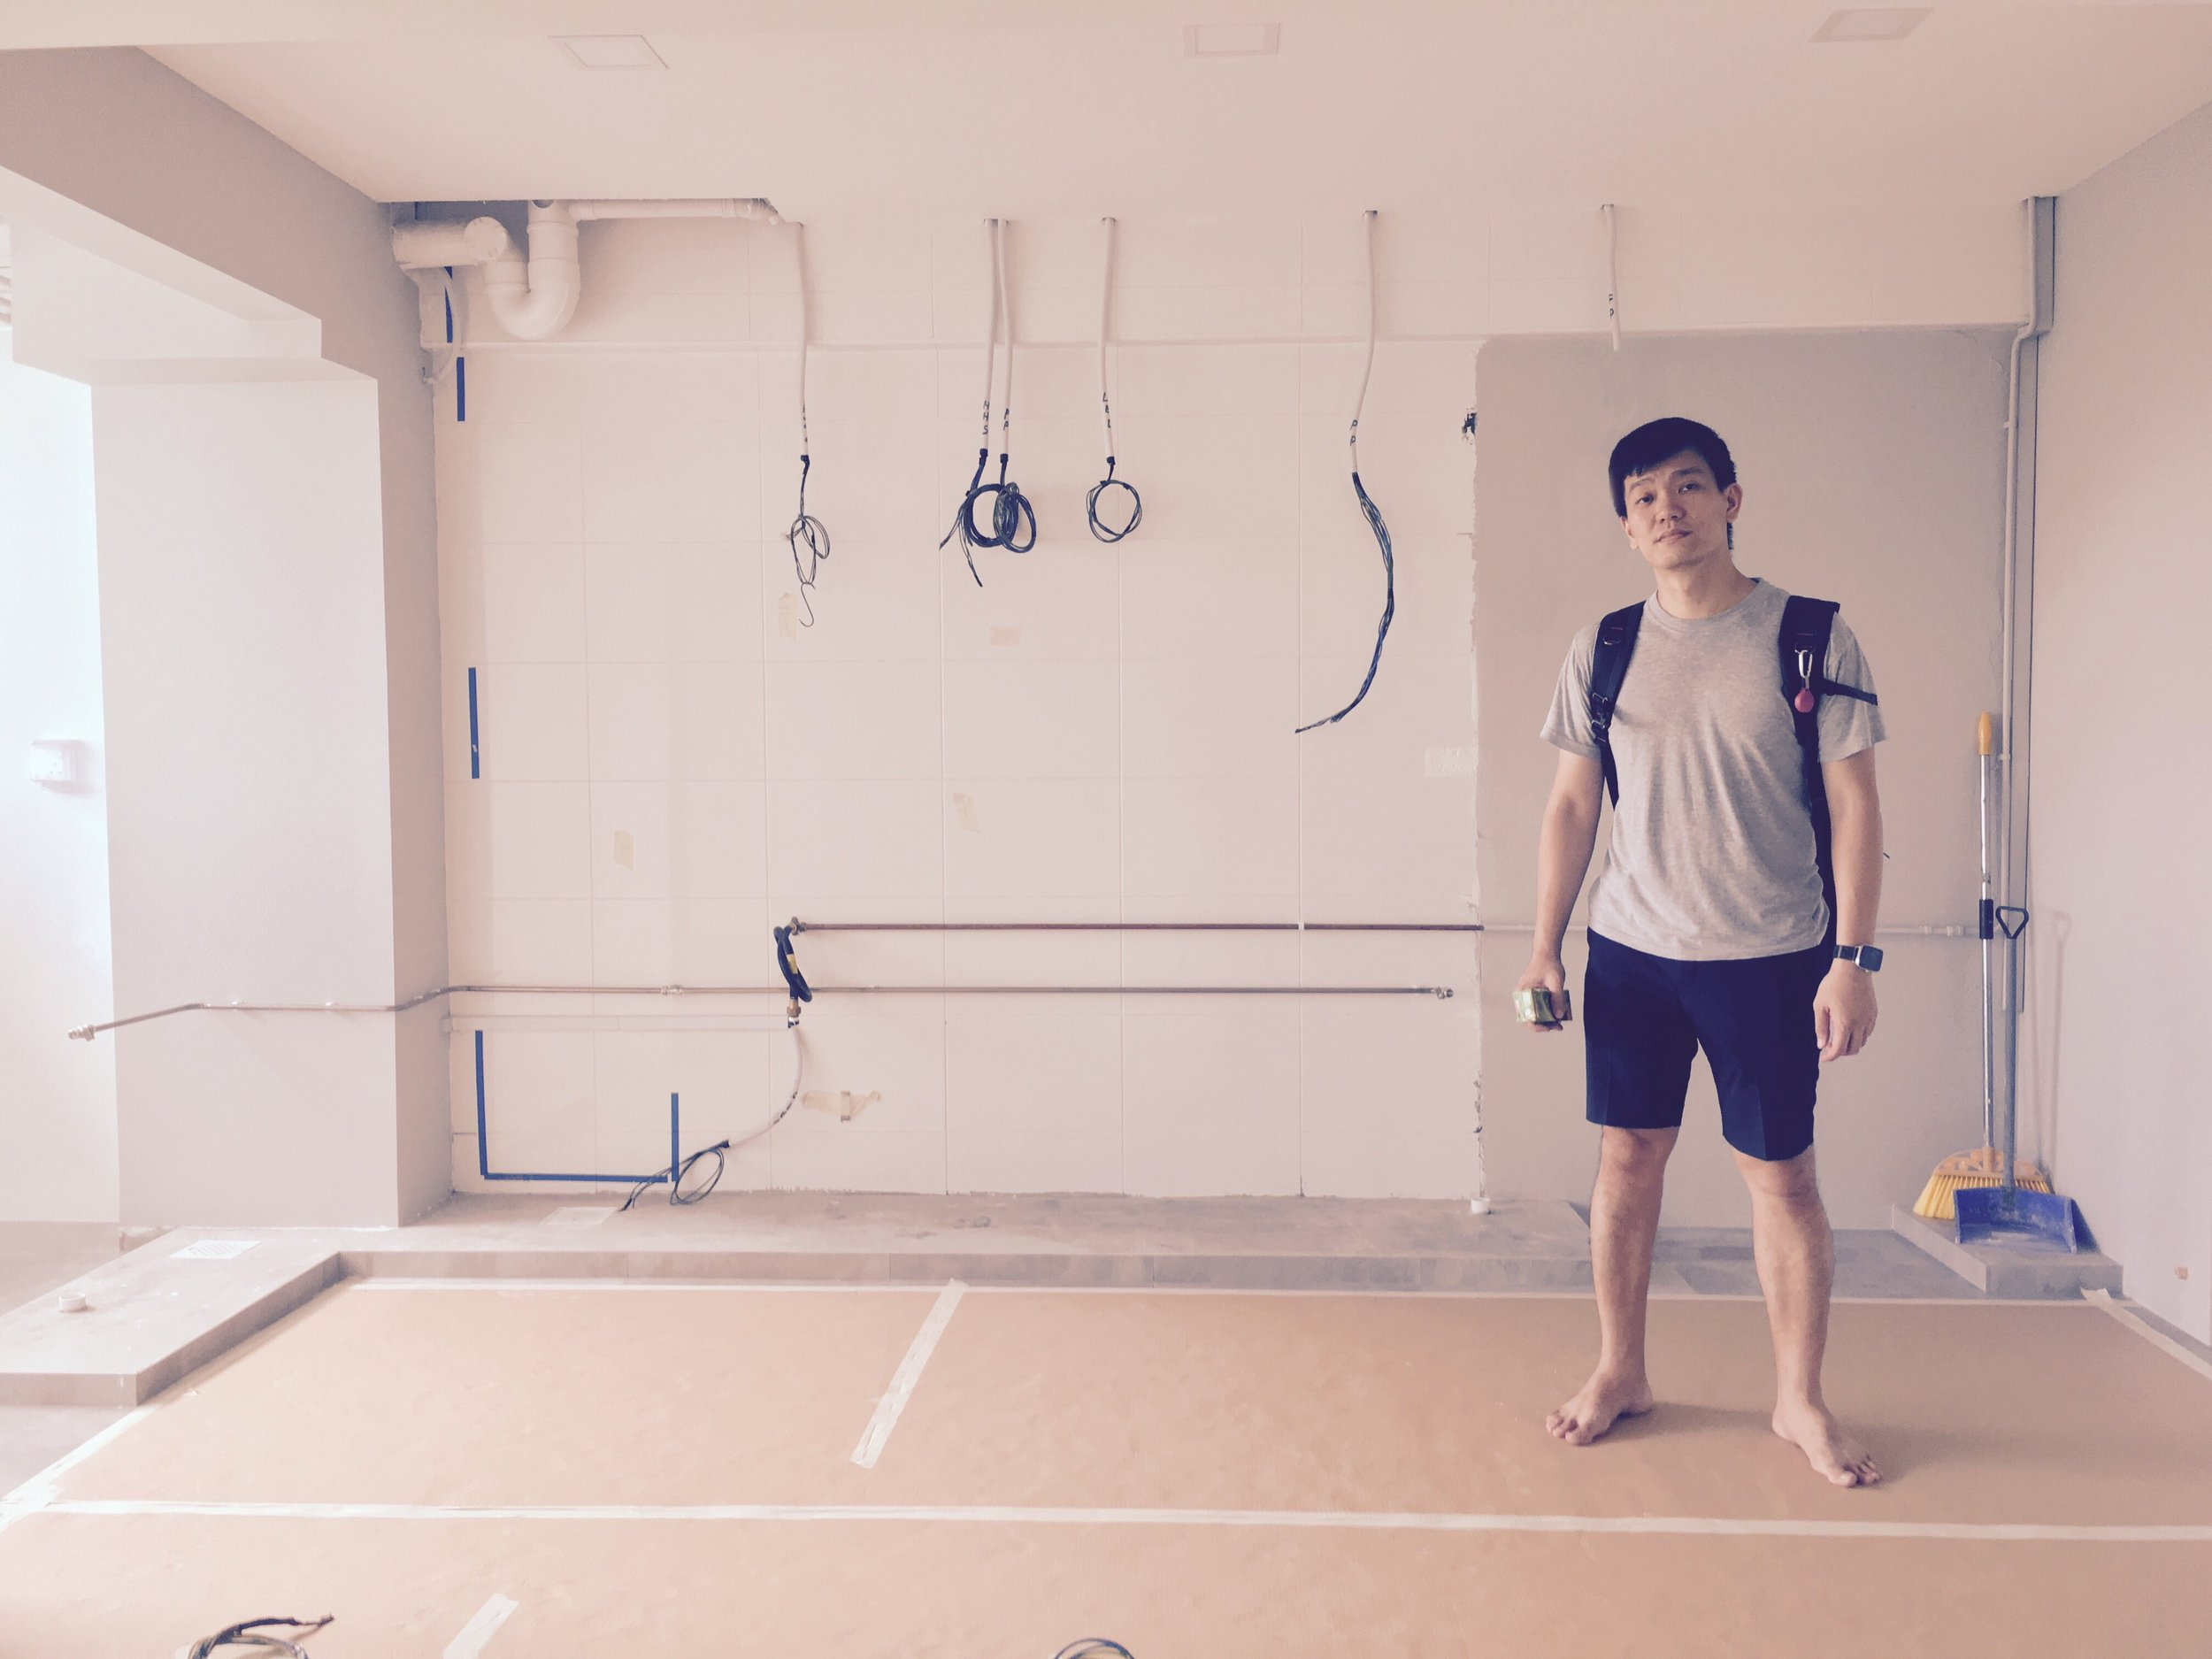 Lee Sze-Chin in the kitchen area of his HDB flat at Sengkang, which he was renovating into a home-cum-community-arts-space. Photo by Michael Lee, 2017.